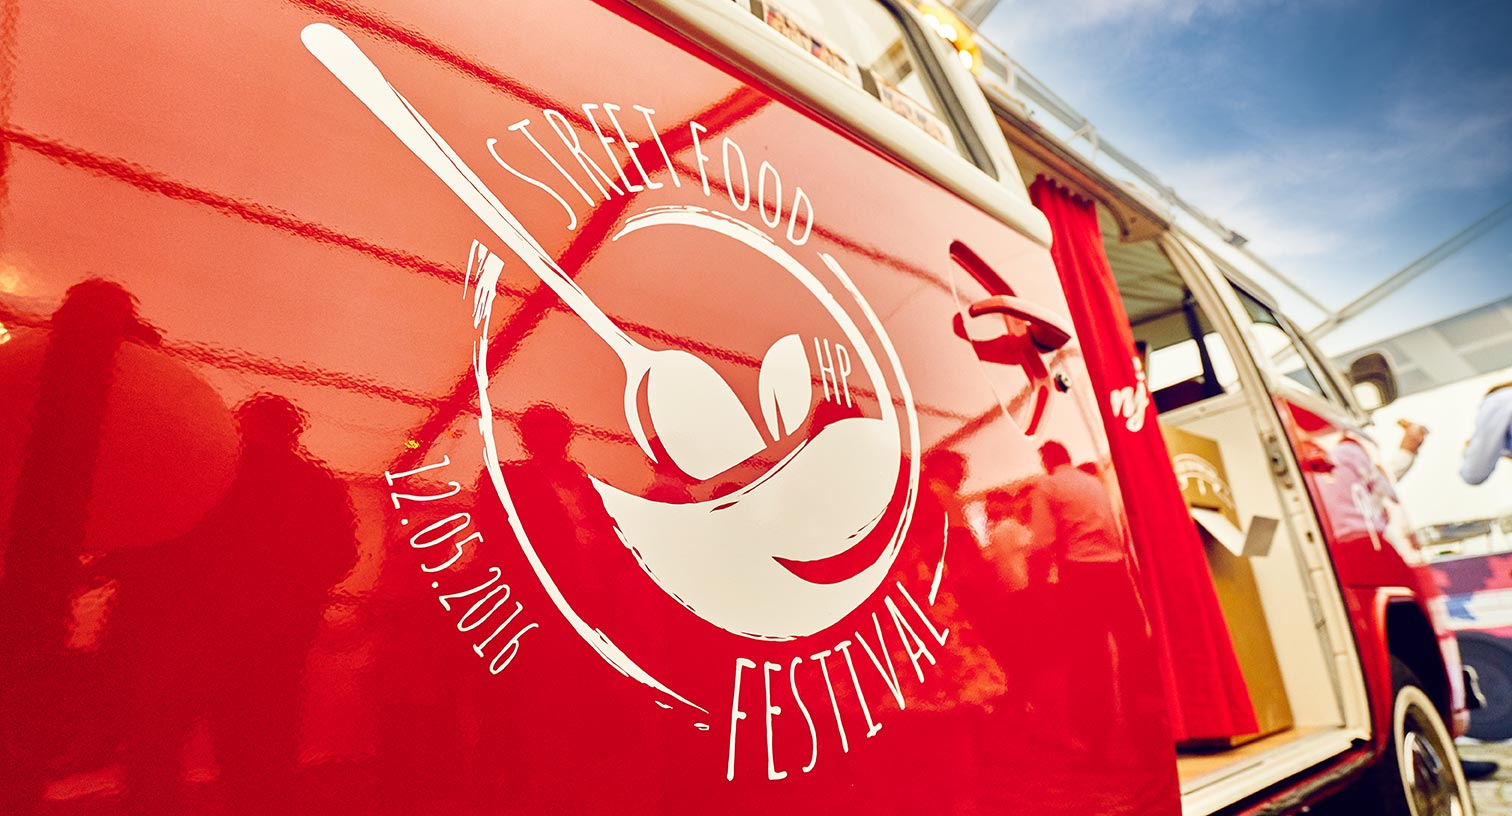 Photobox mit Branding am Streetfood Festival